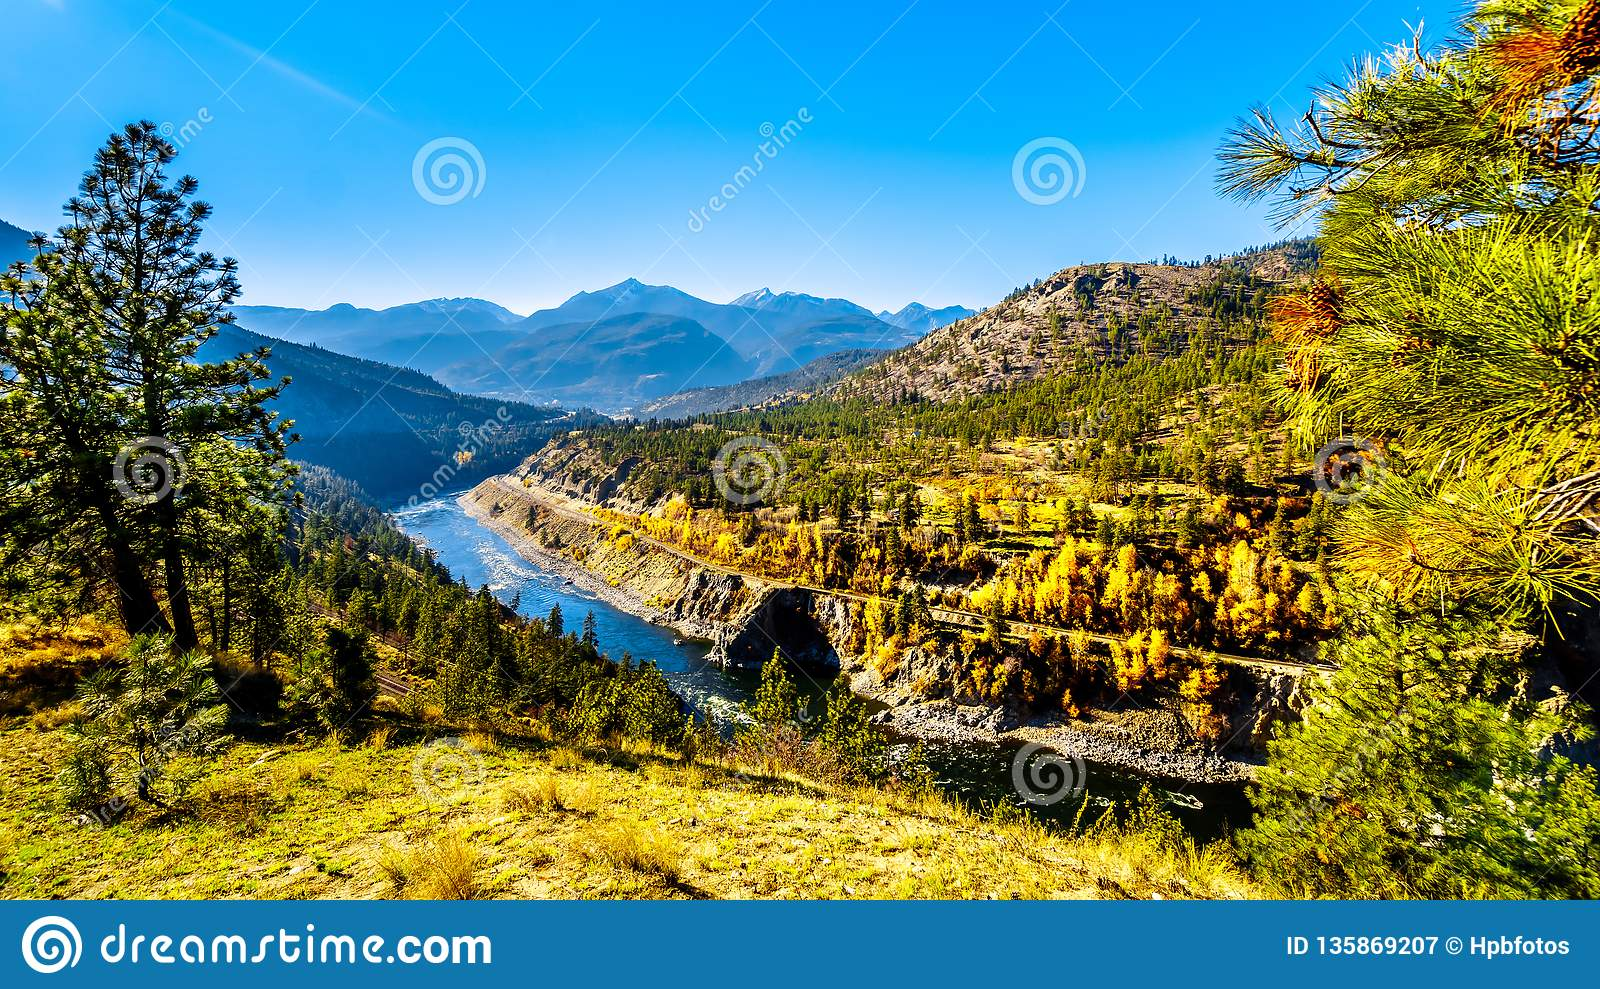 Fall colors along the Thompson River in BC Canada